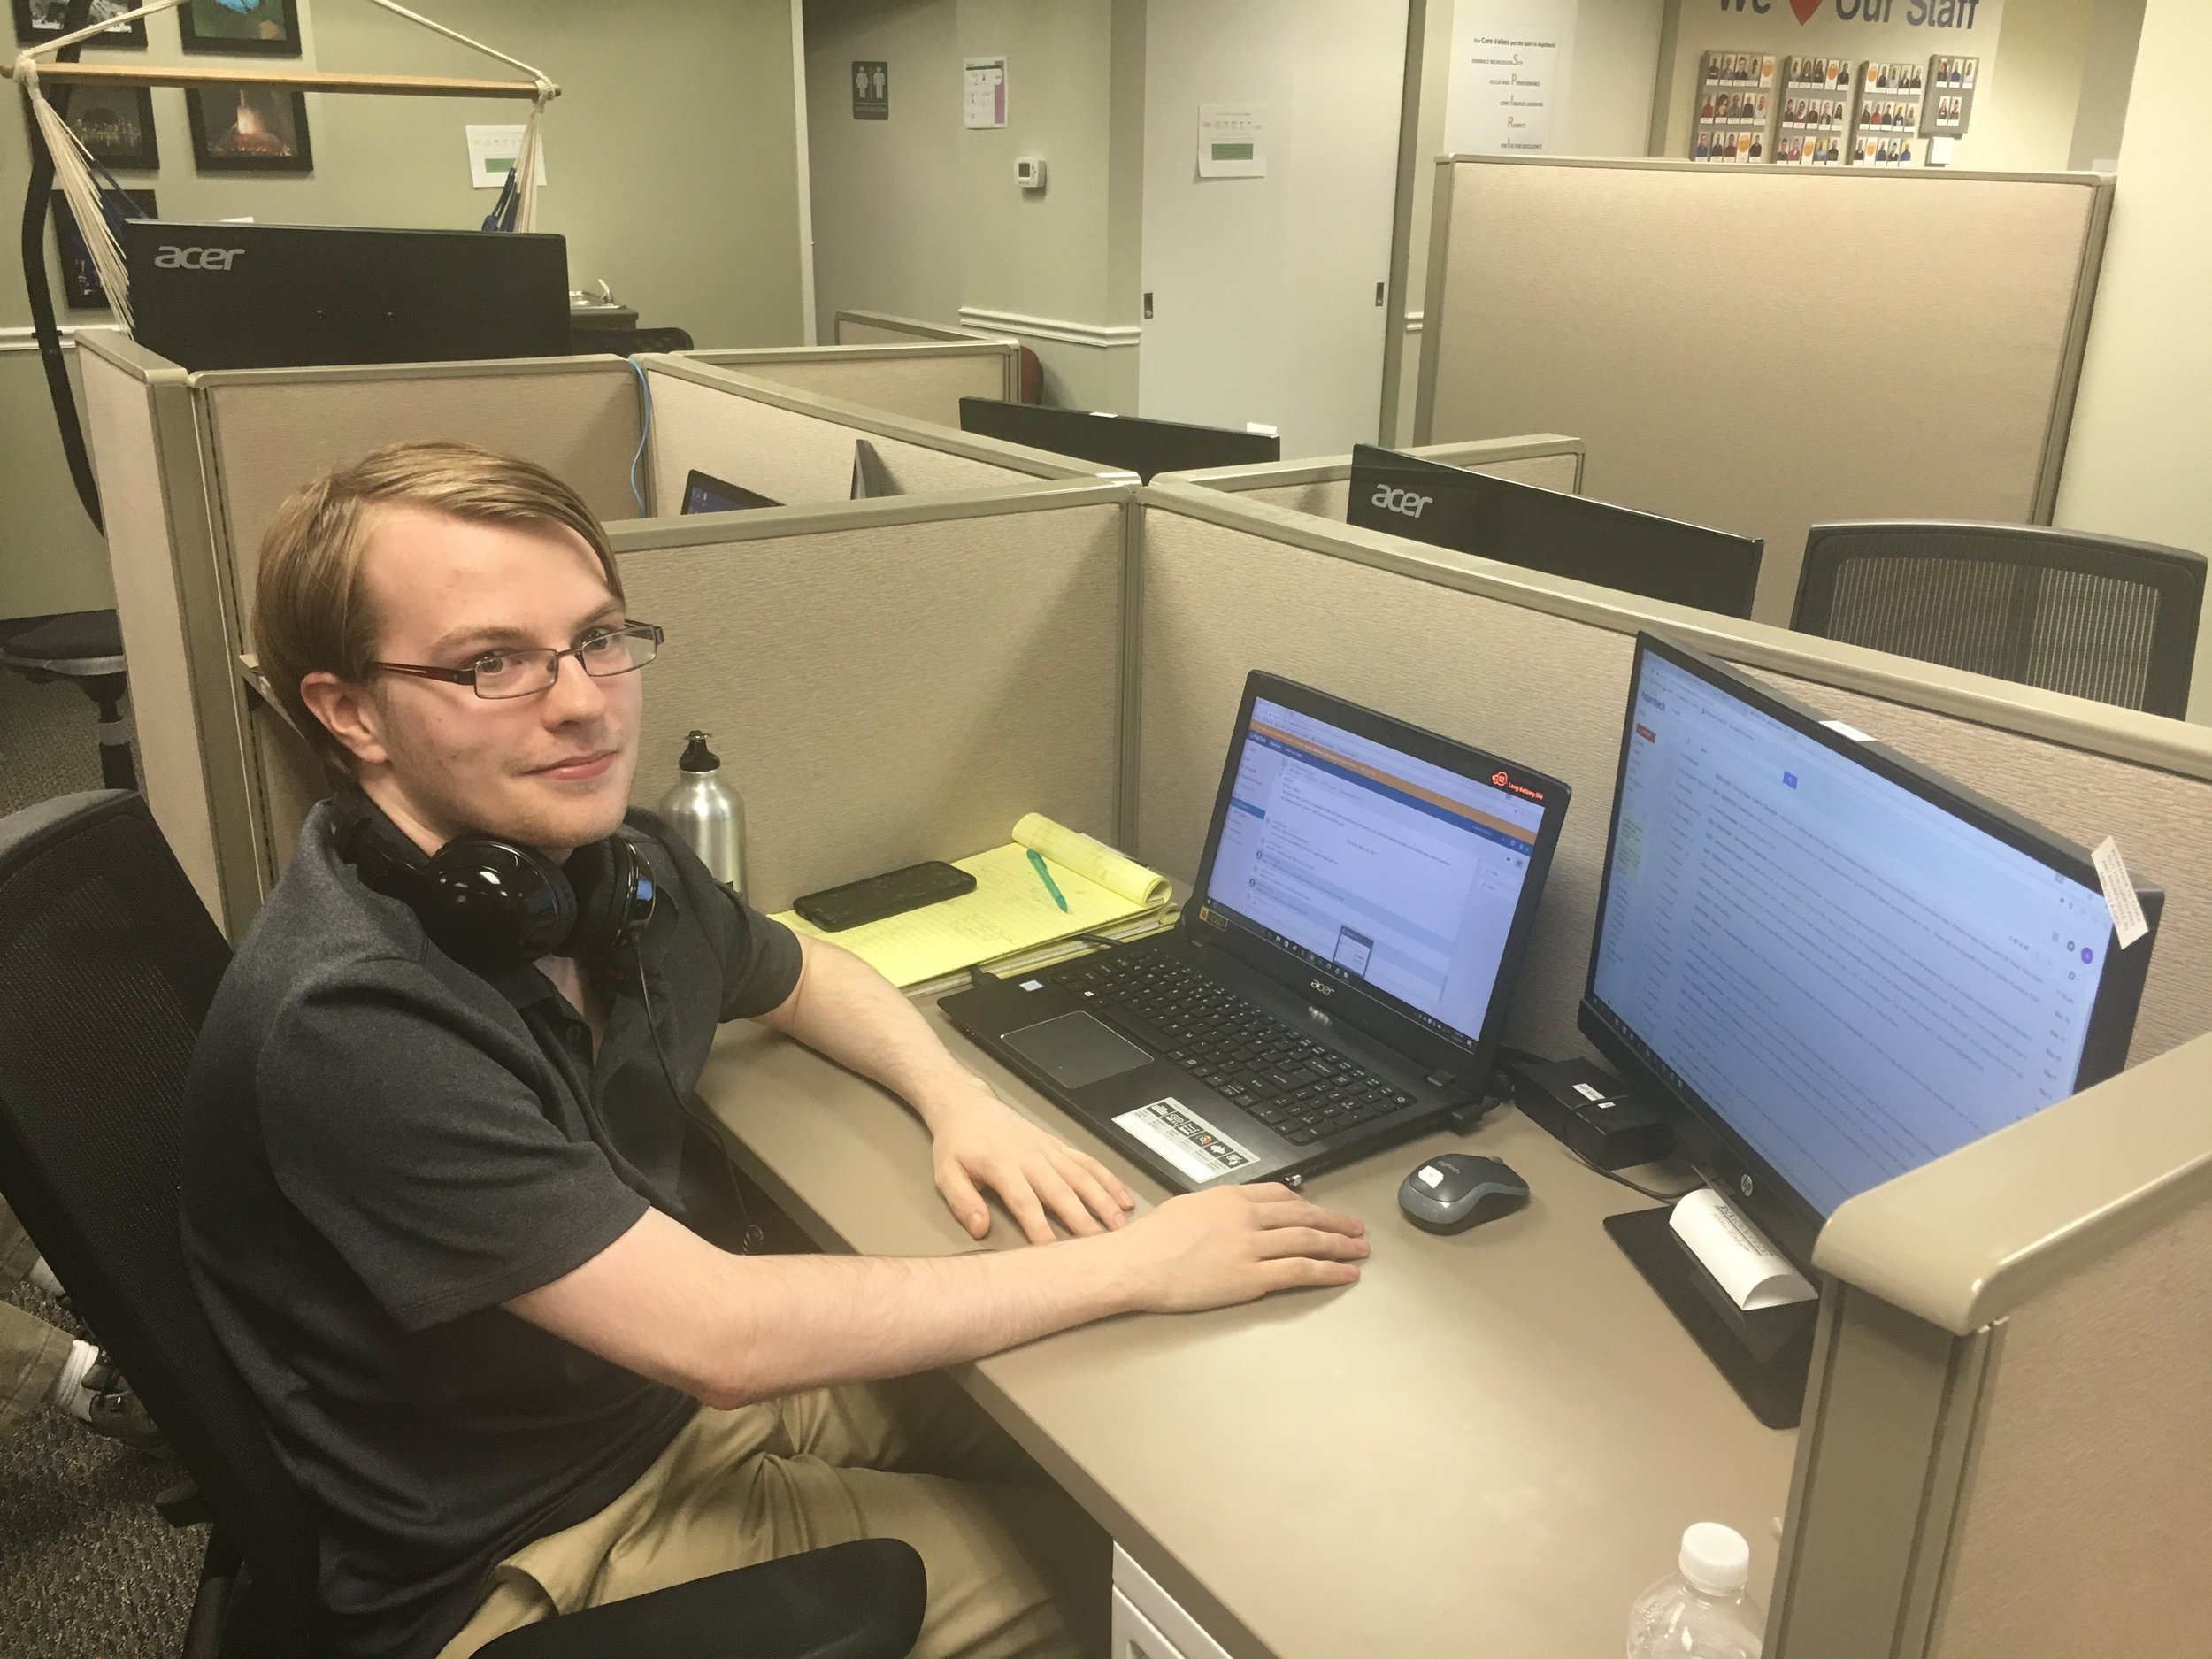 """I feel a little less alone. At other jobs, I felt more isolated, because I didn't feel like I could talk to anyone else. Here feels different. I feel like I could be friends with my co-workers here.""  -Anthony, 22 years old, QA Analyst since 2016"